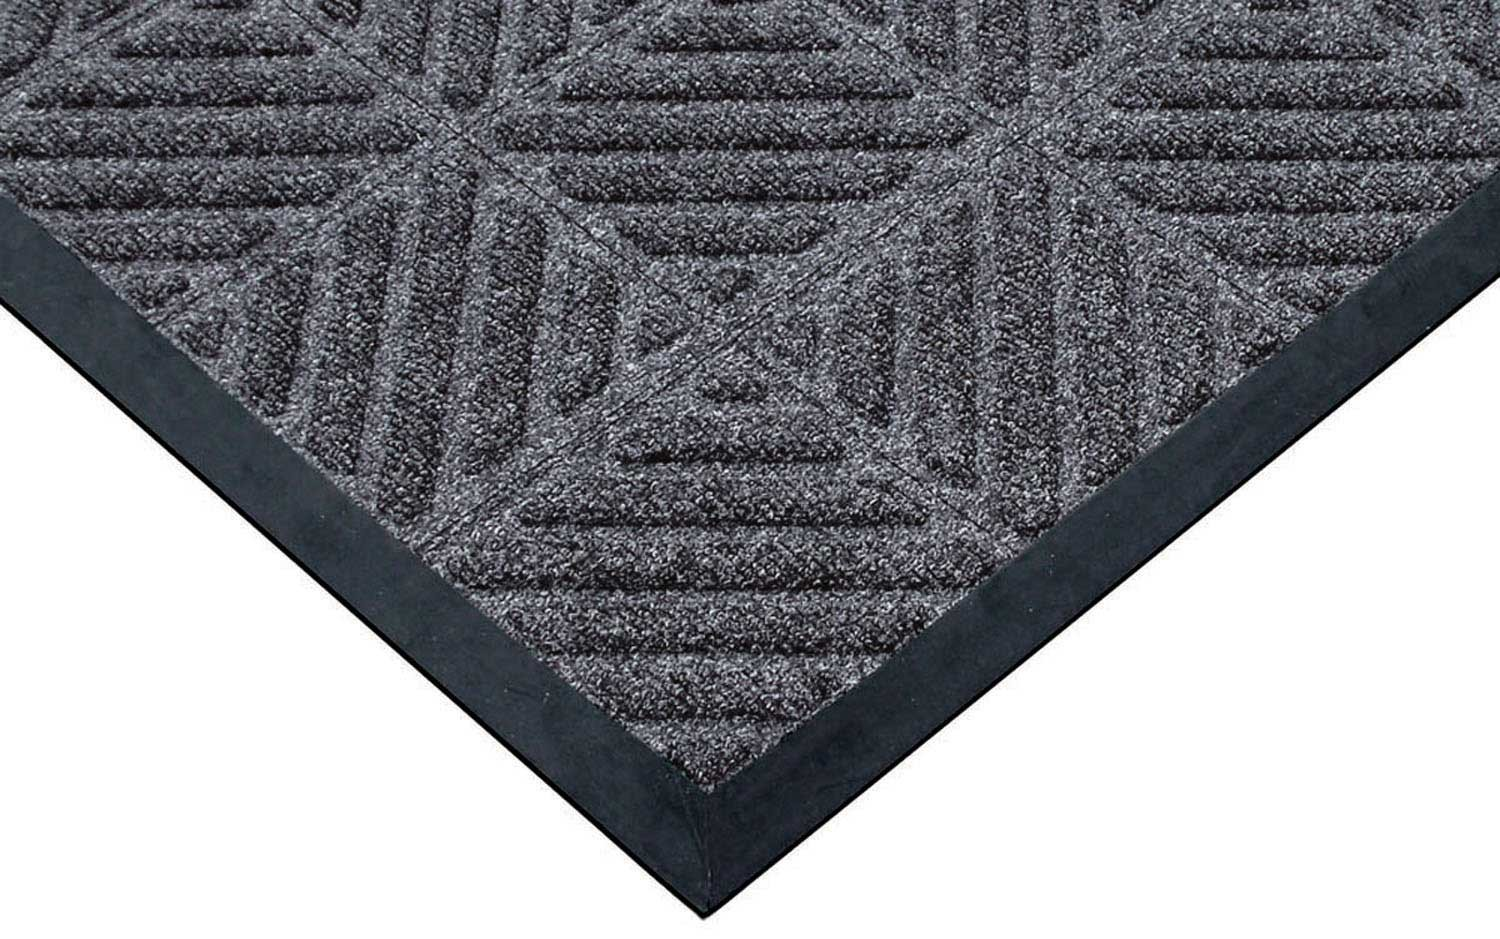 Ecomat Montage Indoor Outdoor Entrance Floor Mat Floor